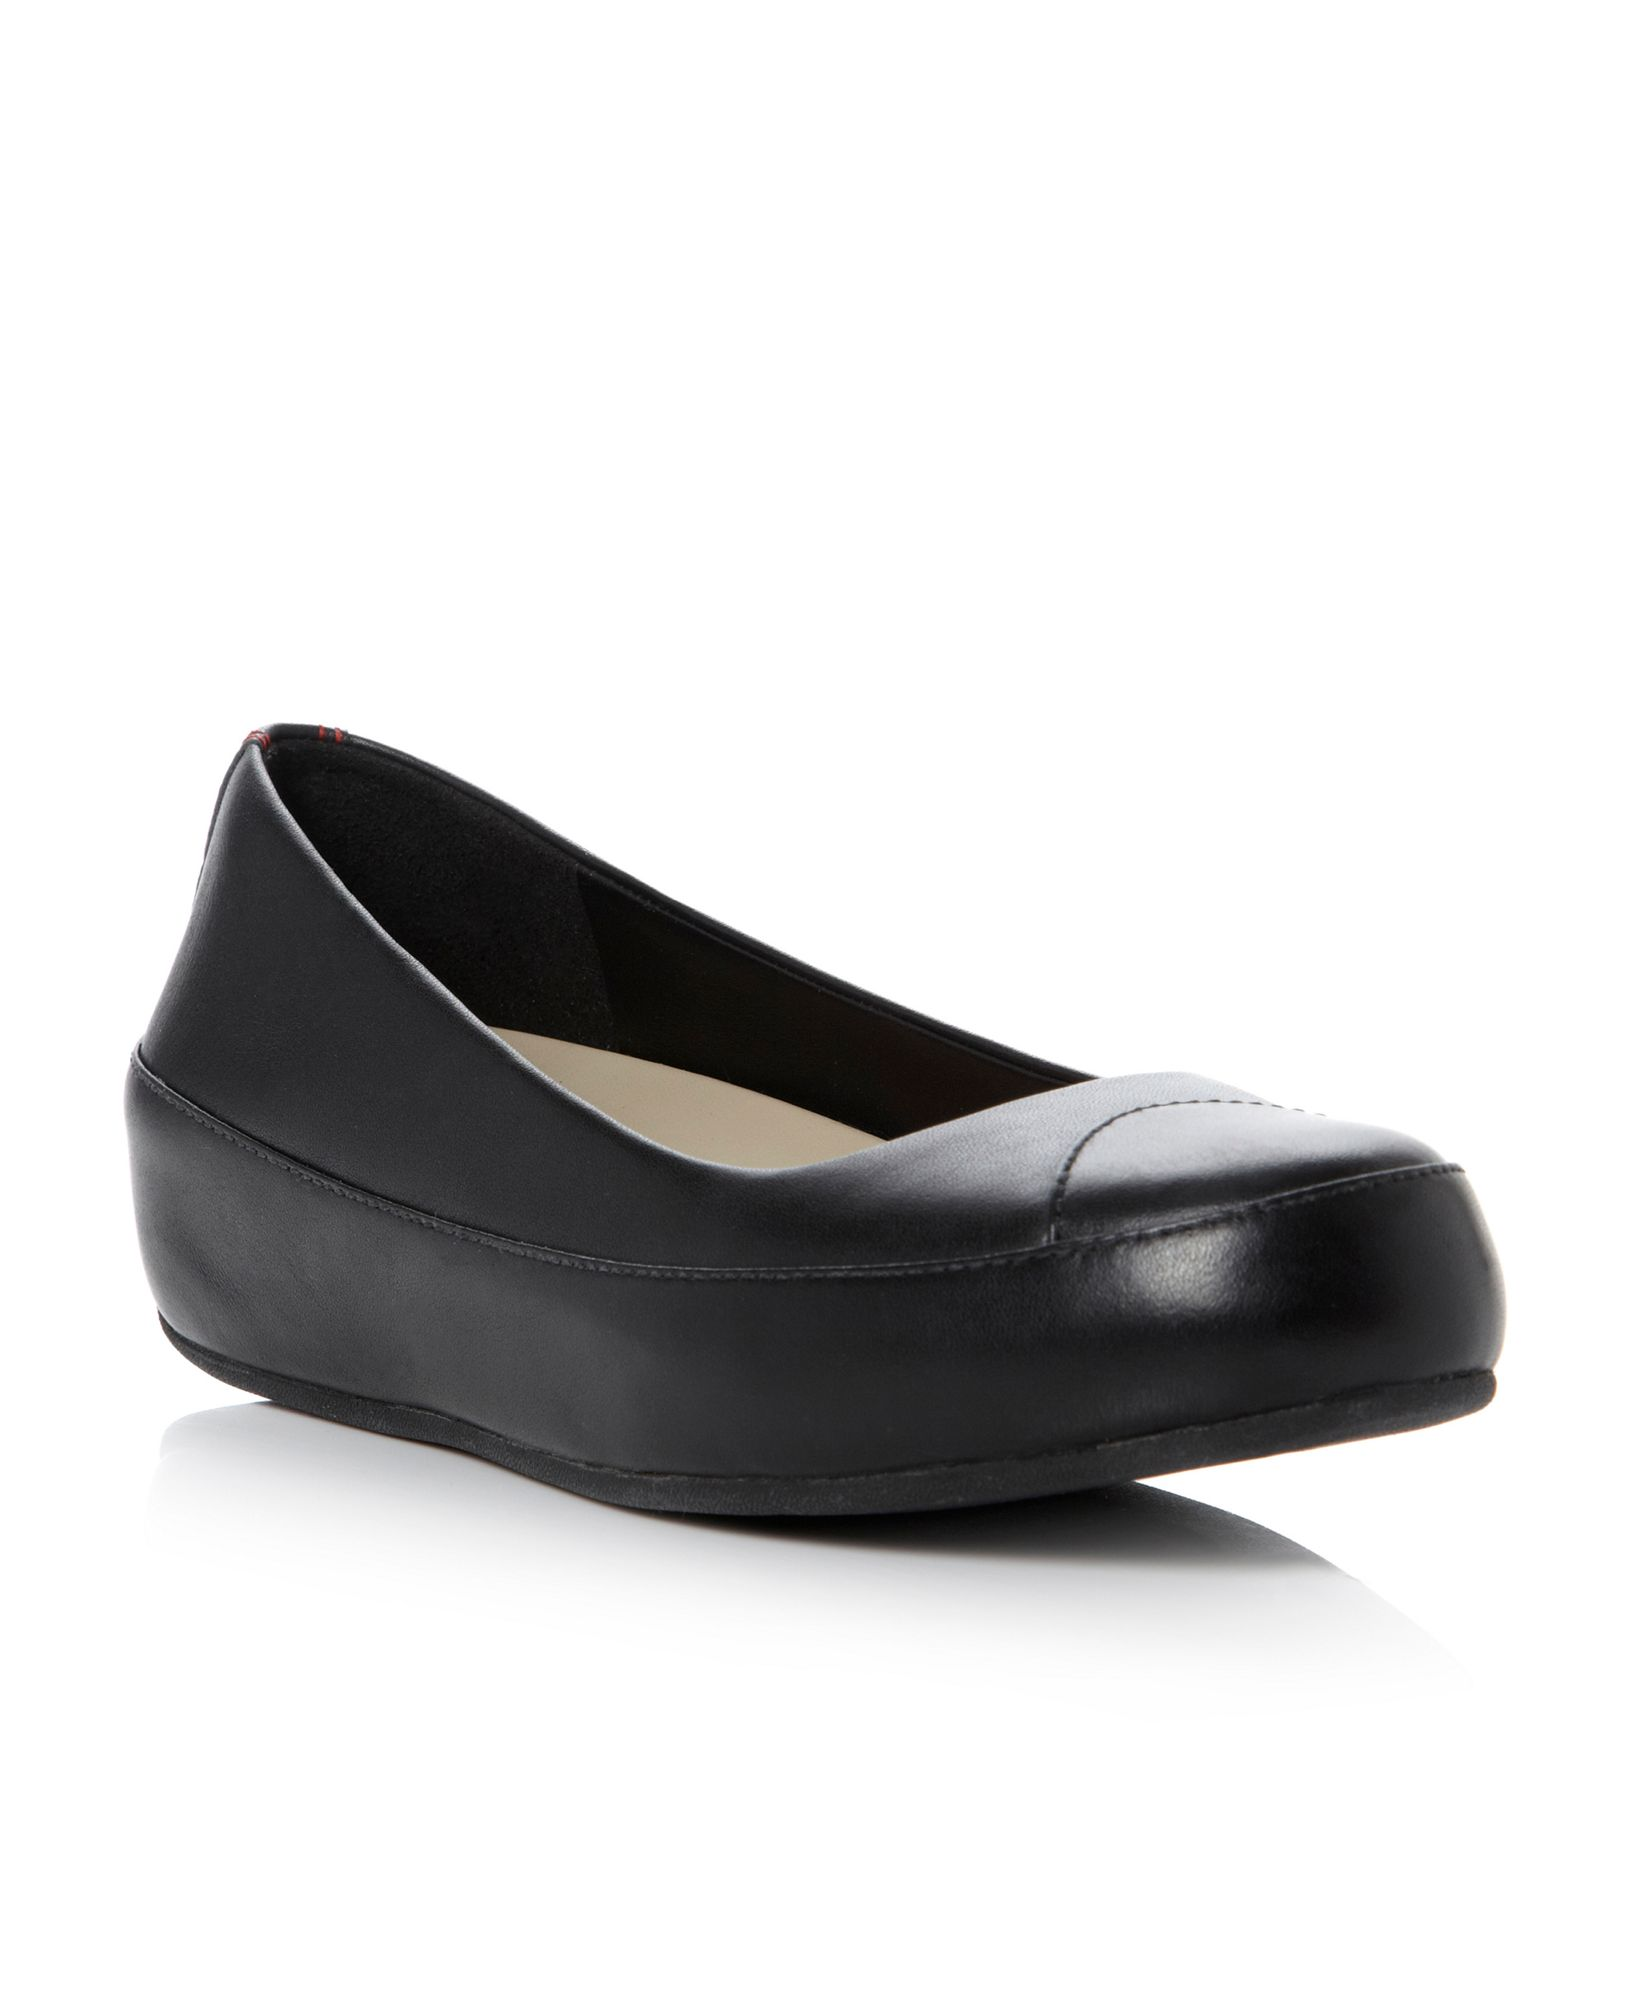 Fitflop Due Shoes Uk